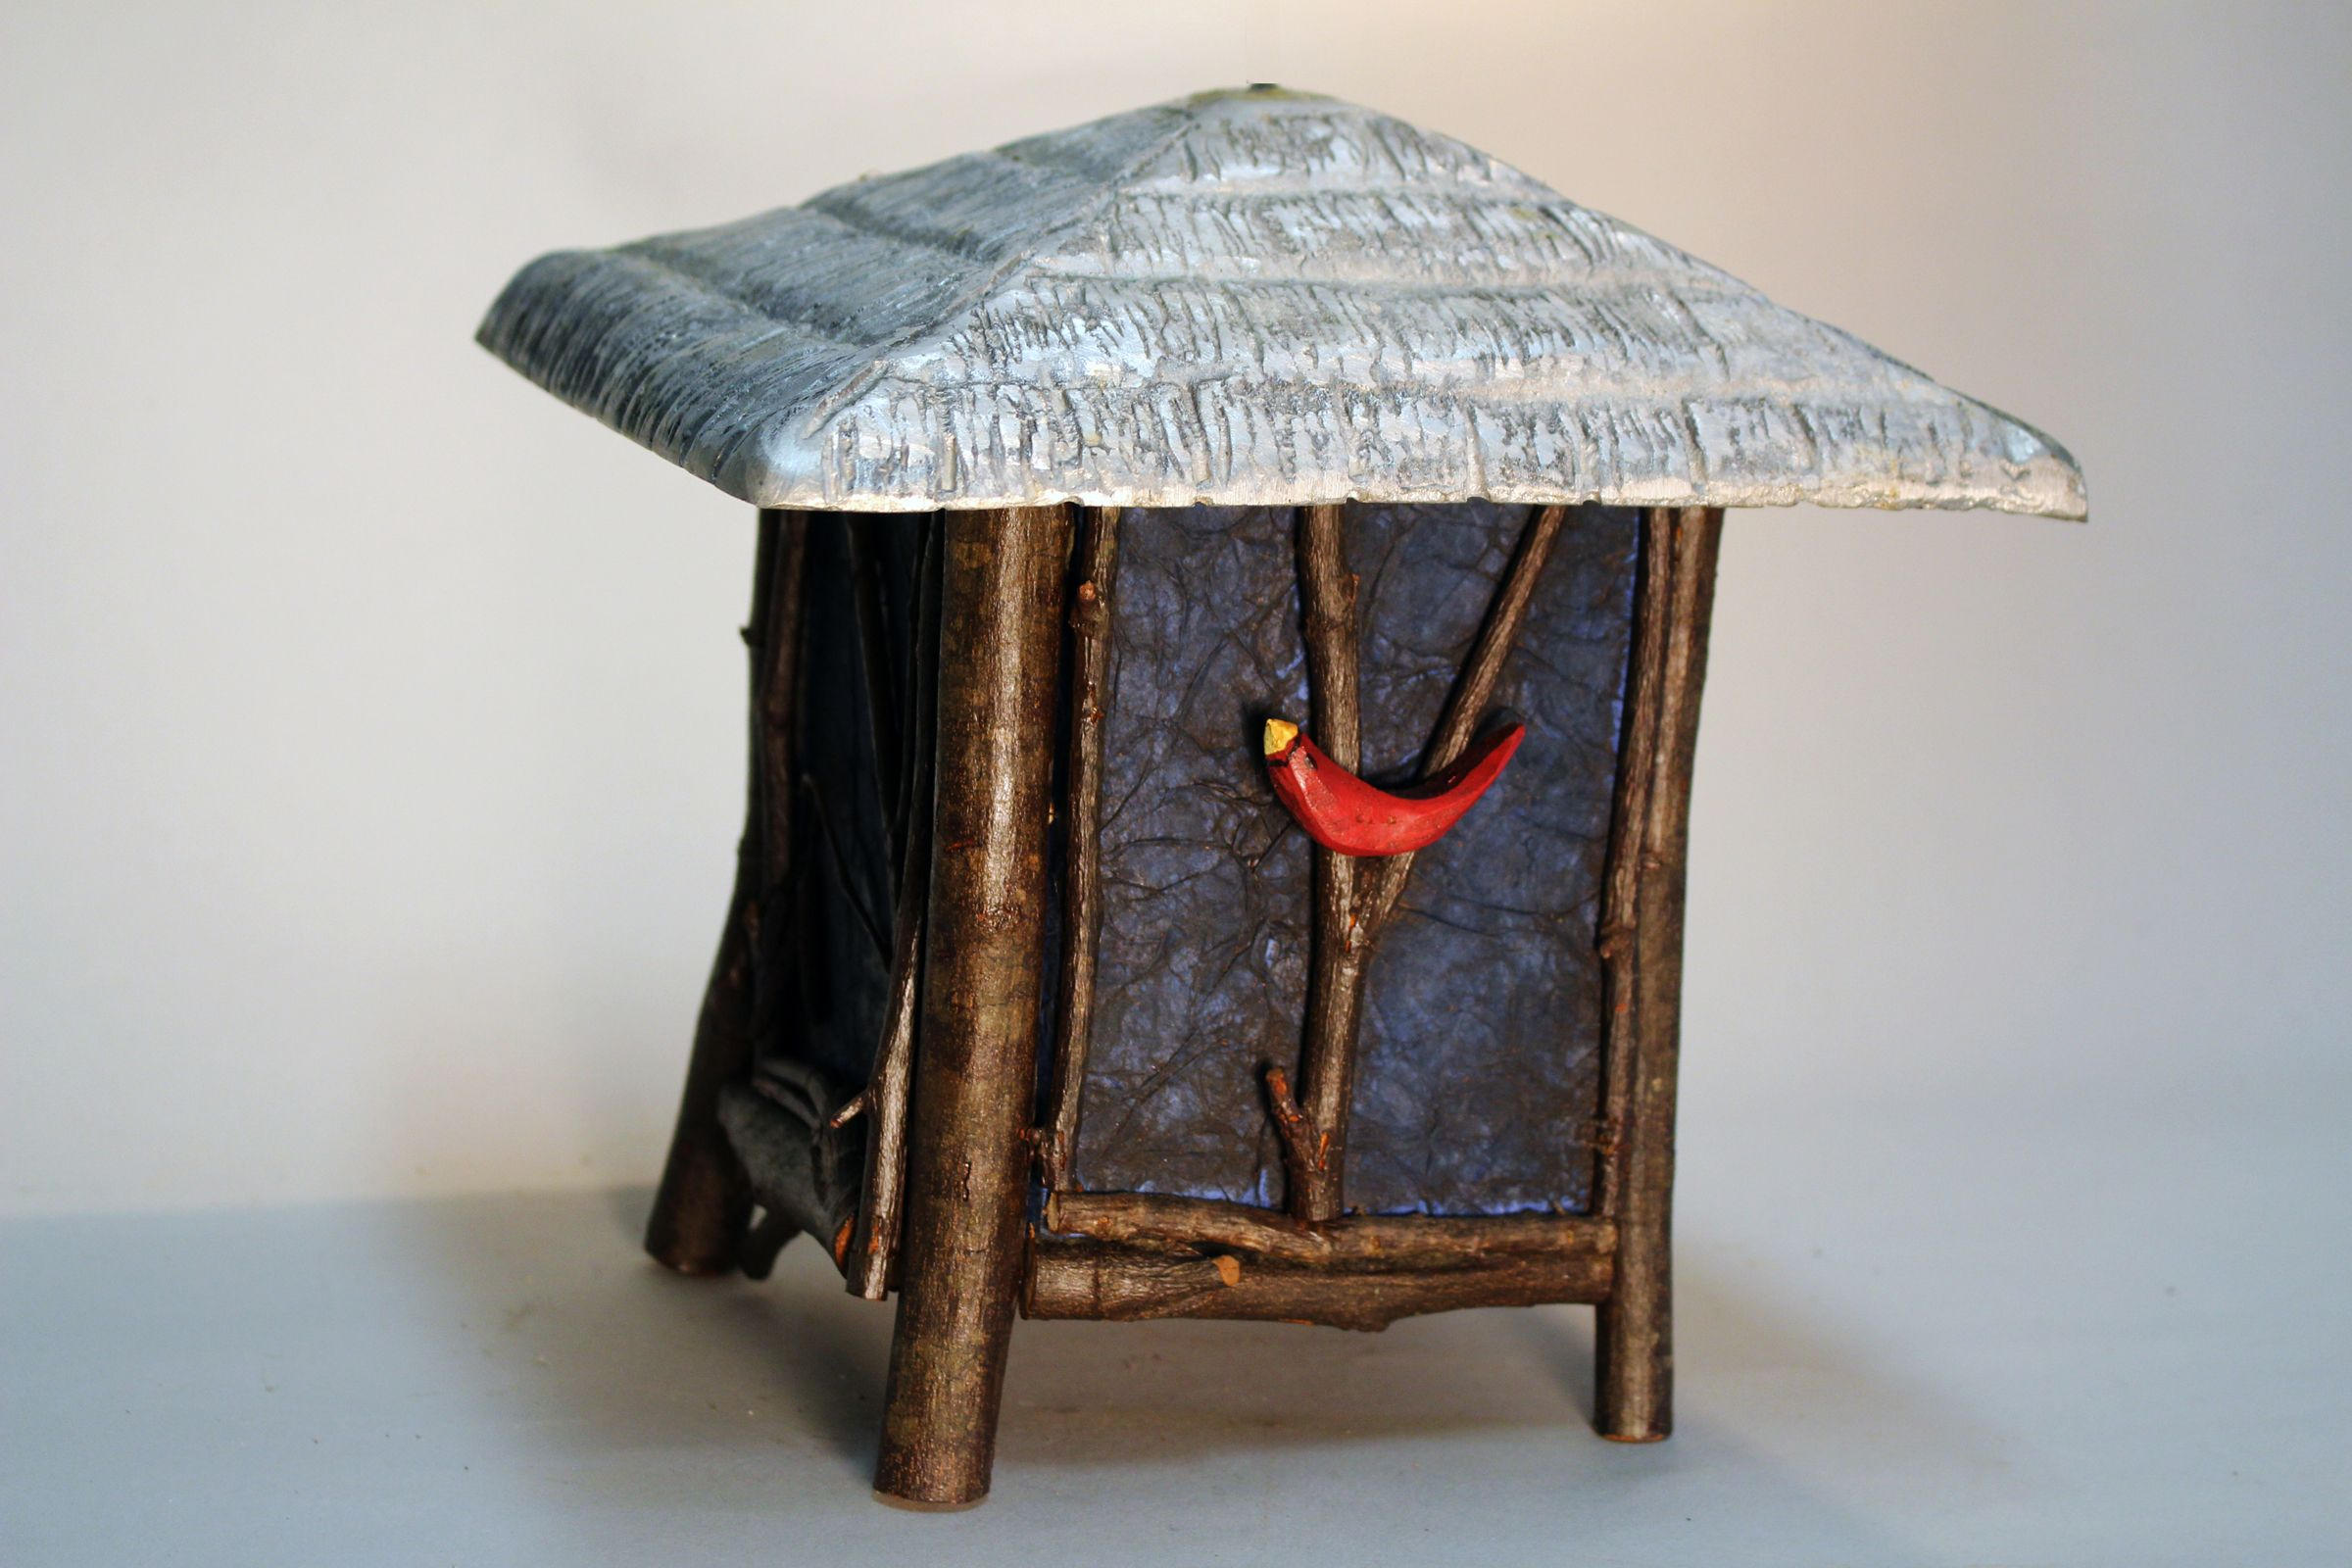 TREE HOUSE, a Whimsical, Uniquely Creative Small or Sharing Cremation Art Urn for Human or Pet Ashes